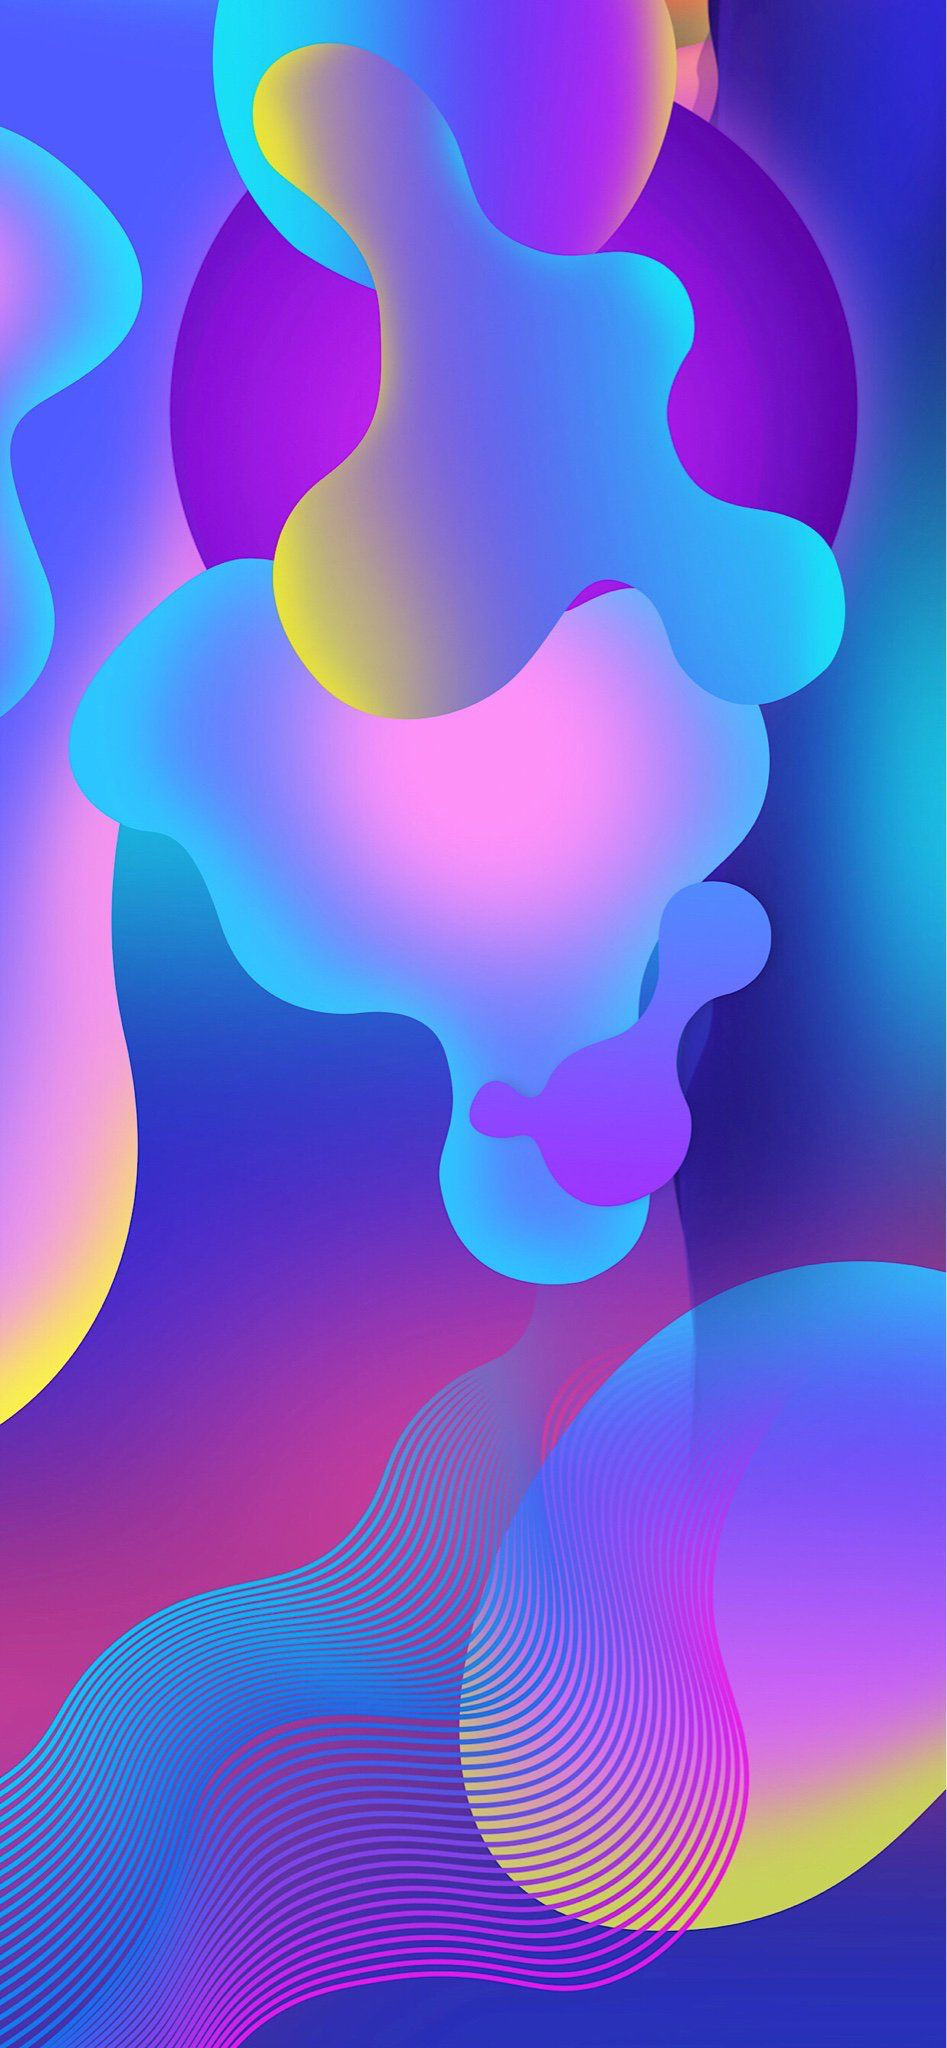 Iphone Xs Max Wallpaper Solid Blurred Colors In 2019 Wallpaper